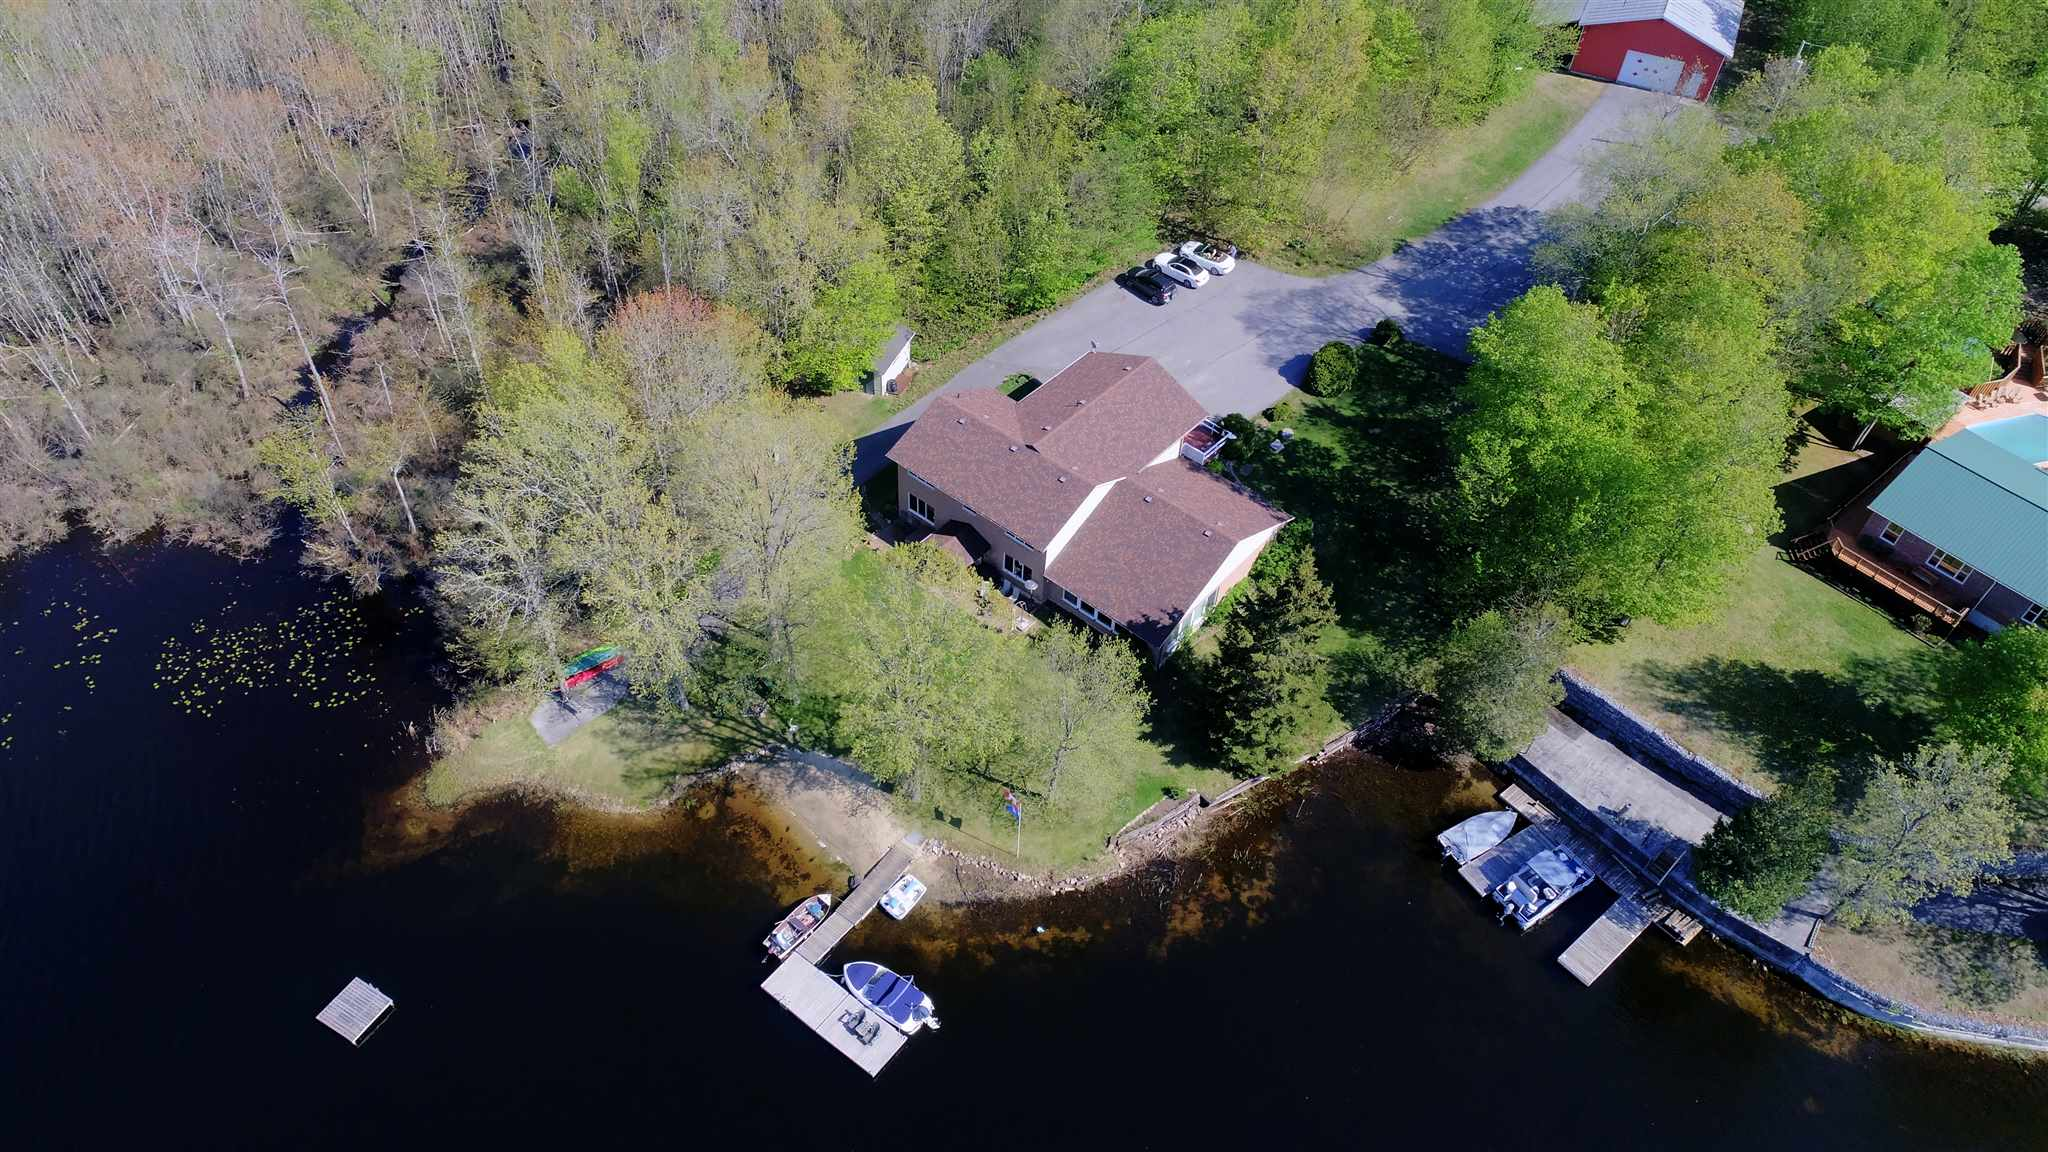 1089 serenity trail lane, South Frontenac Ontario, Canada Located on Howes Lake